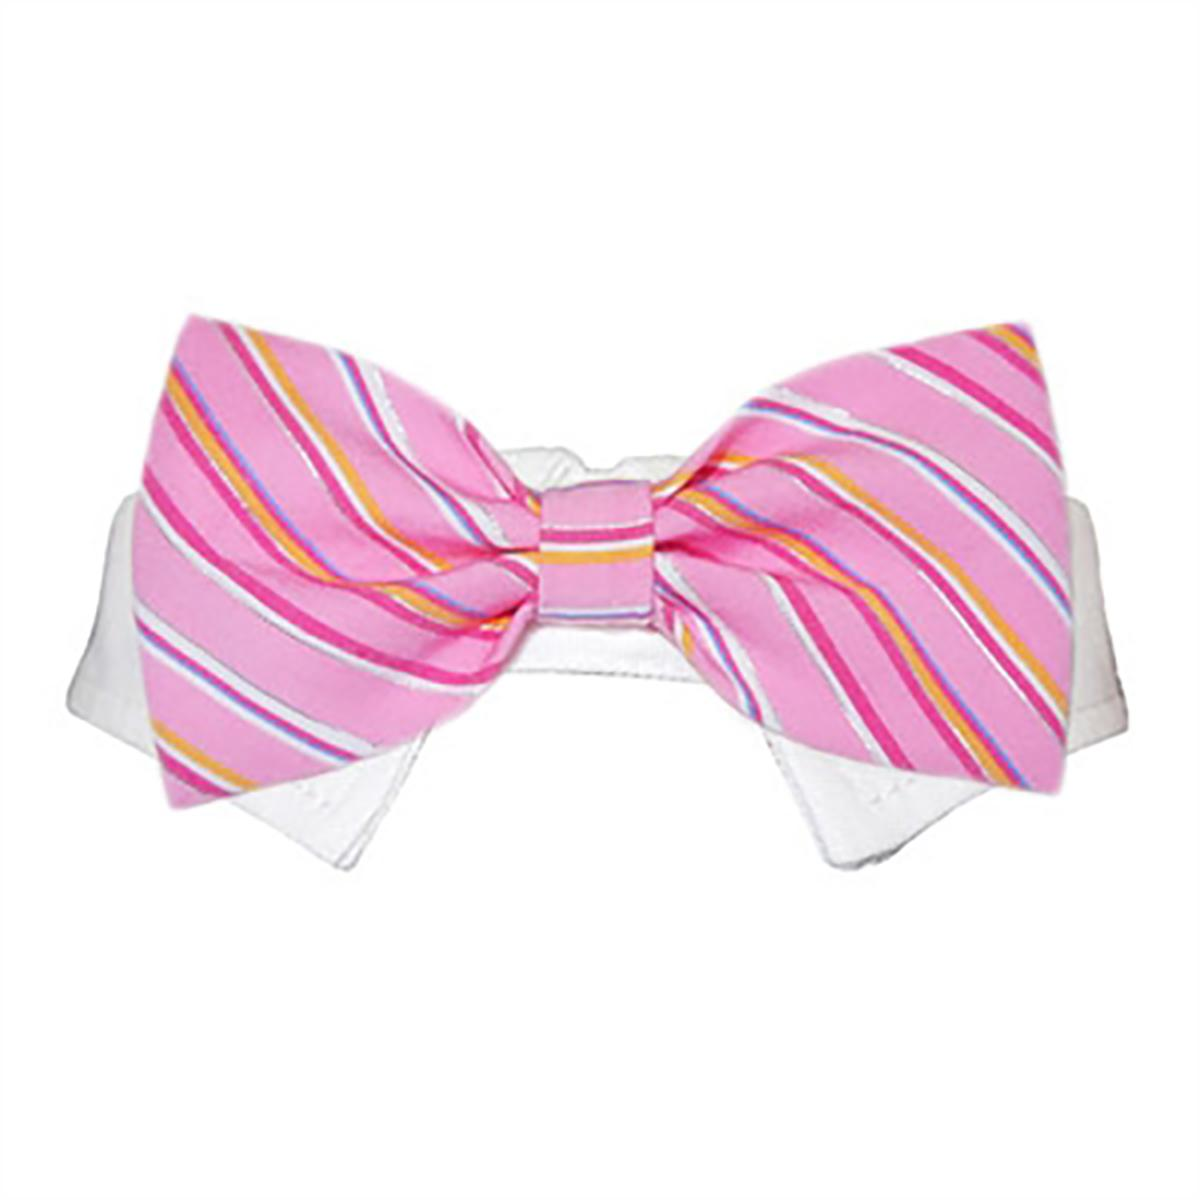 Ryan Dog Shirt Collar And Bow Tie Pink Striped With Same